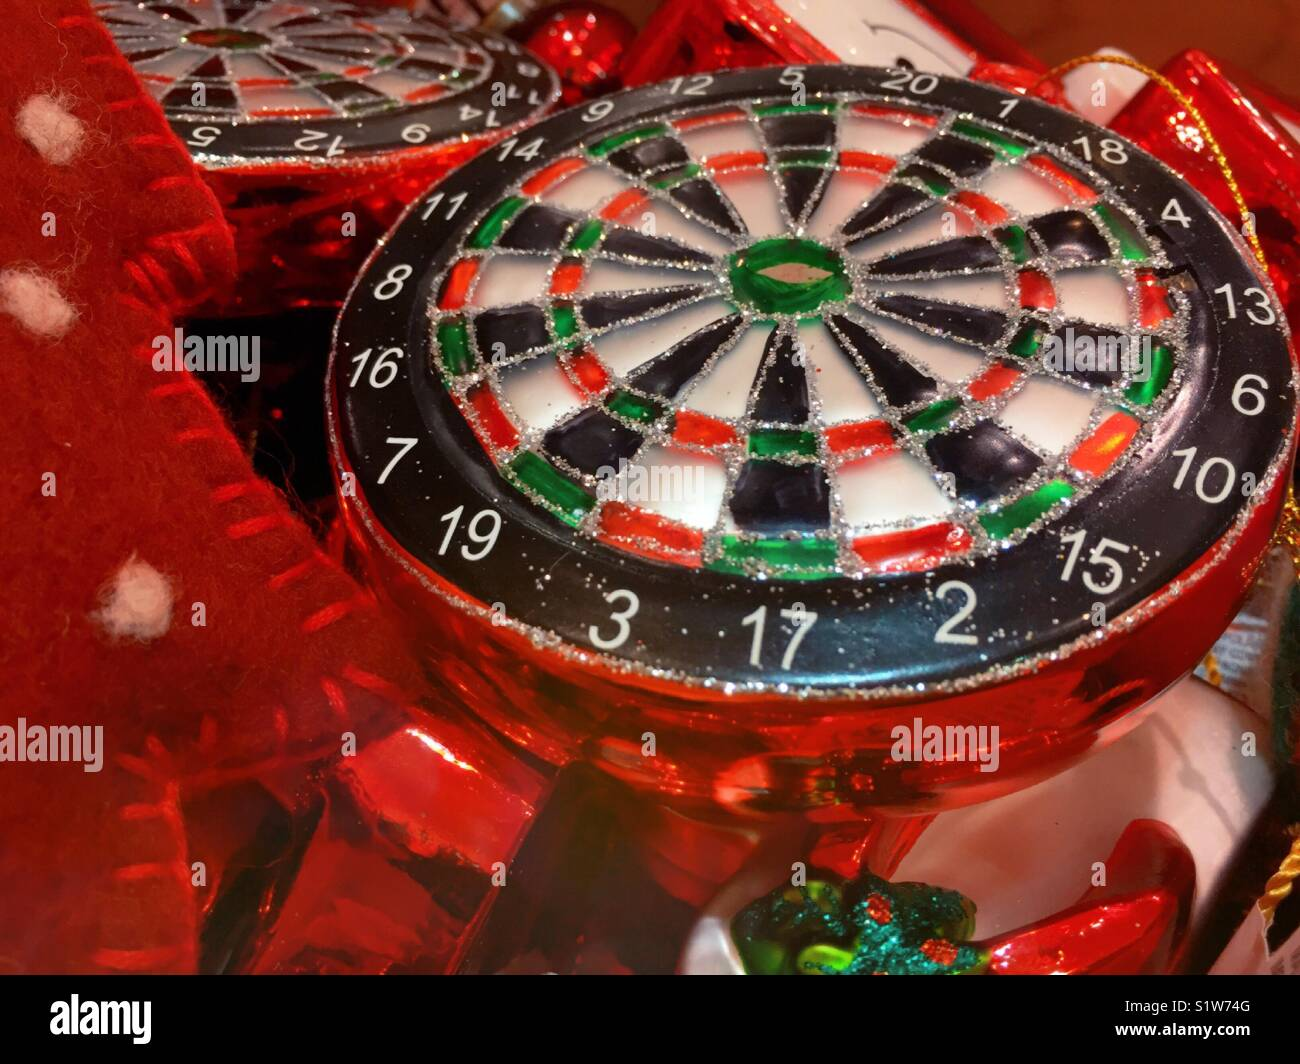 Close-up of roulette wheel Christmas ornament - Stock Image